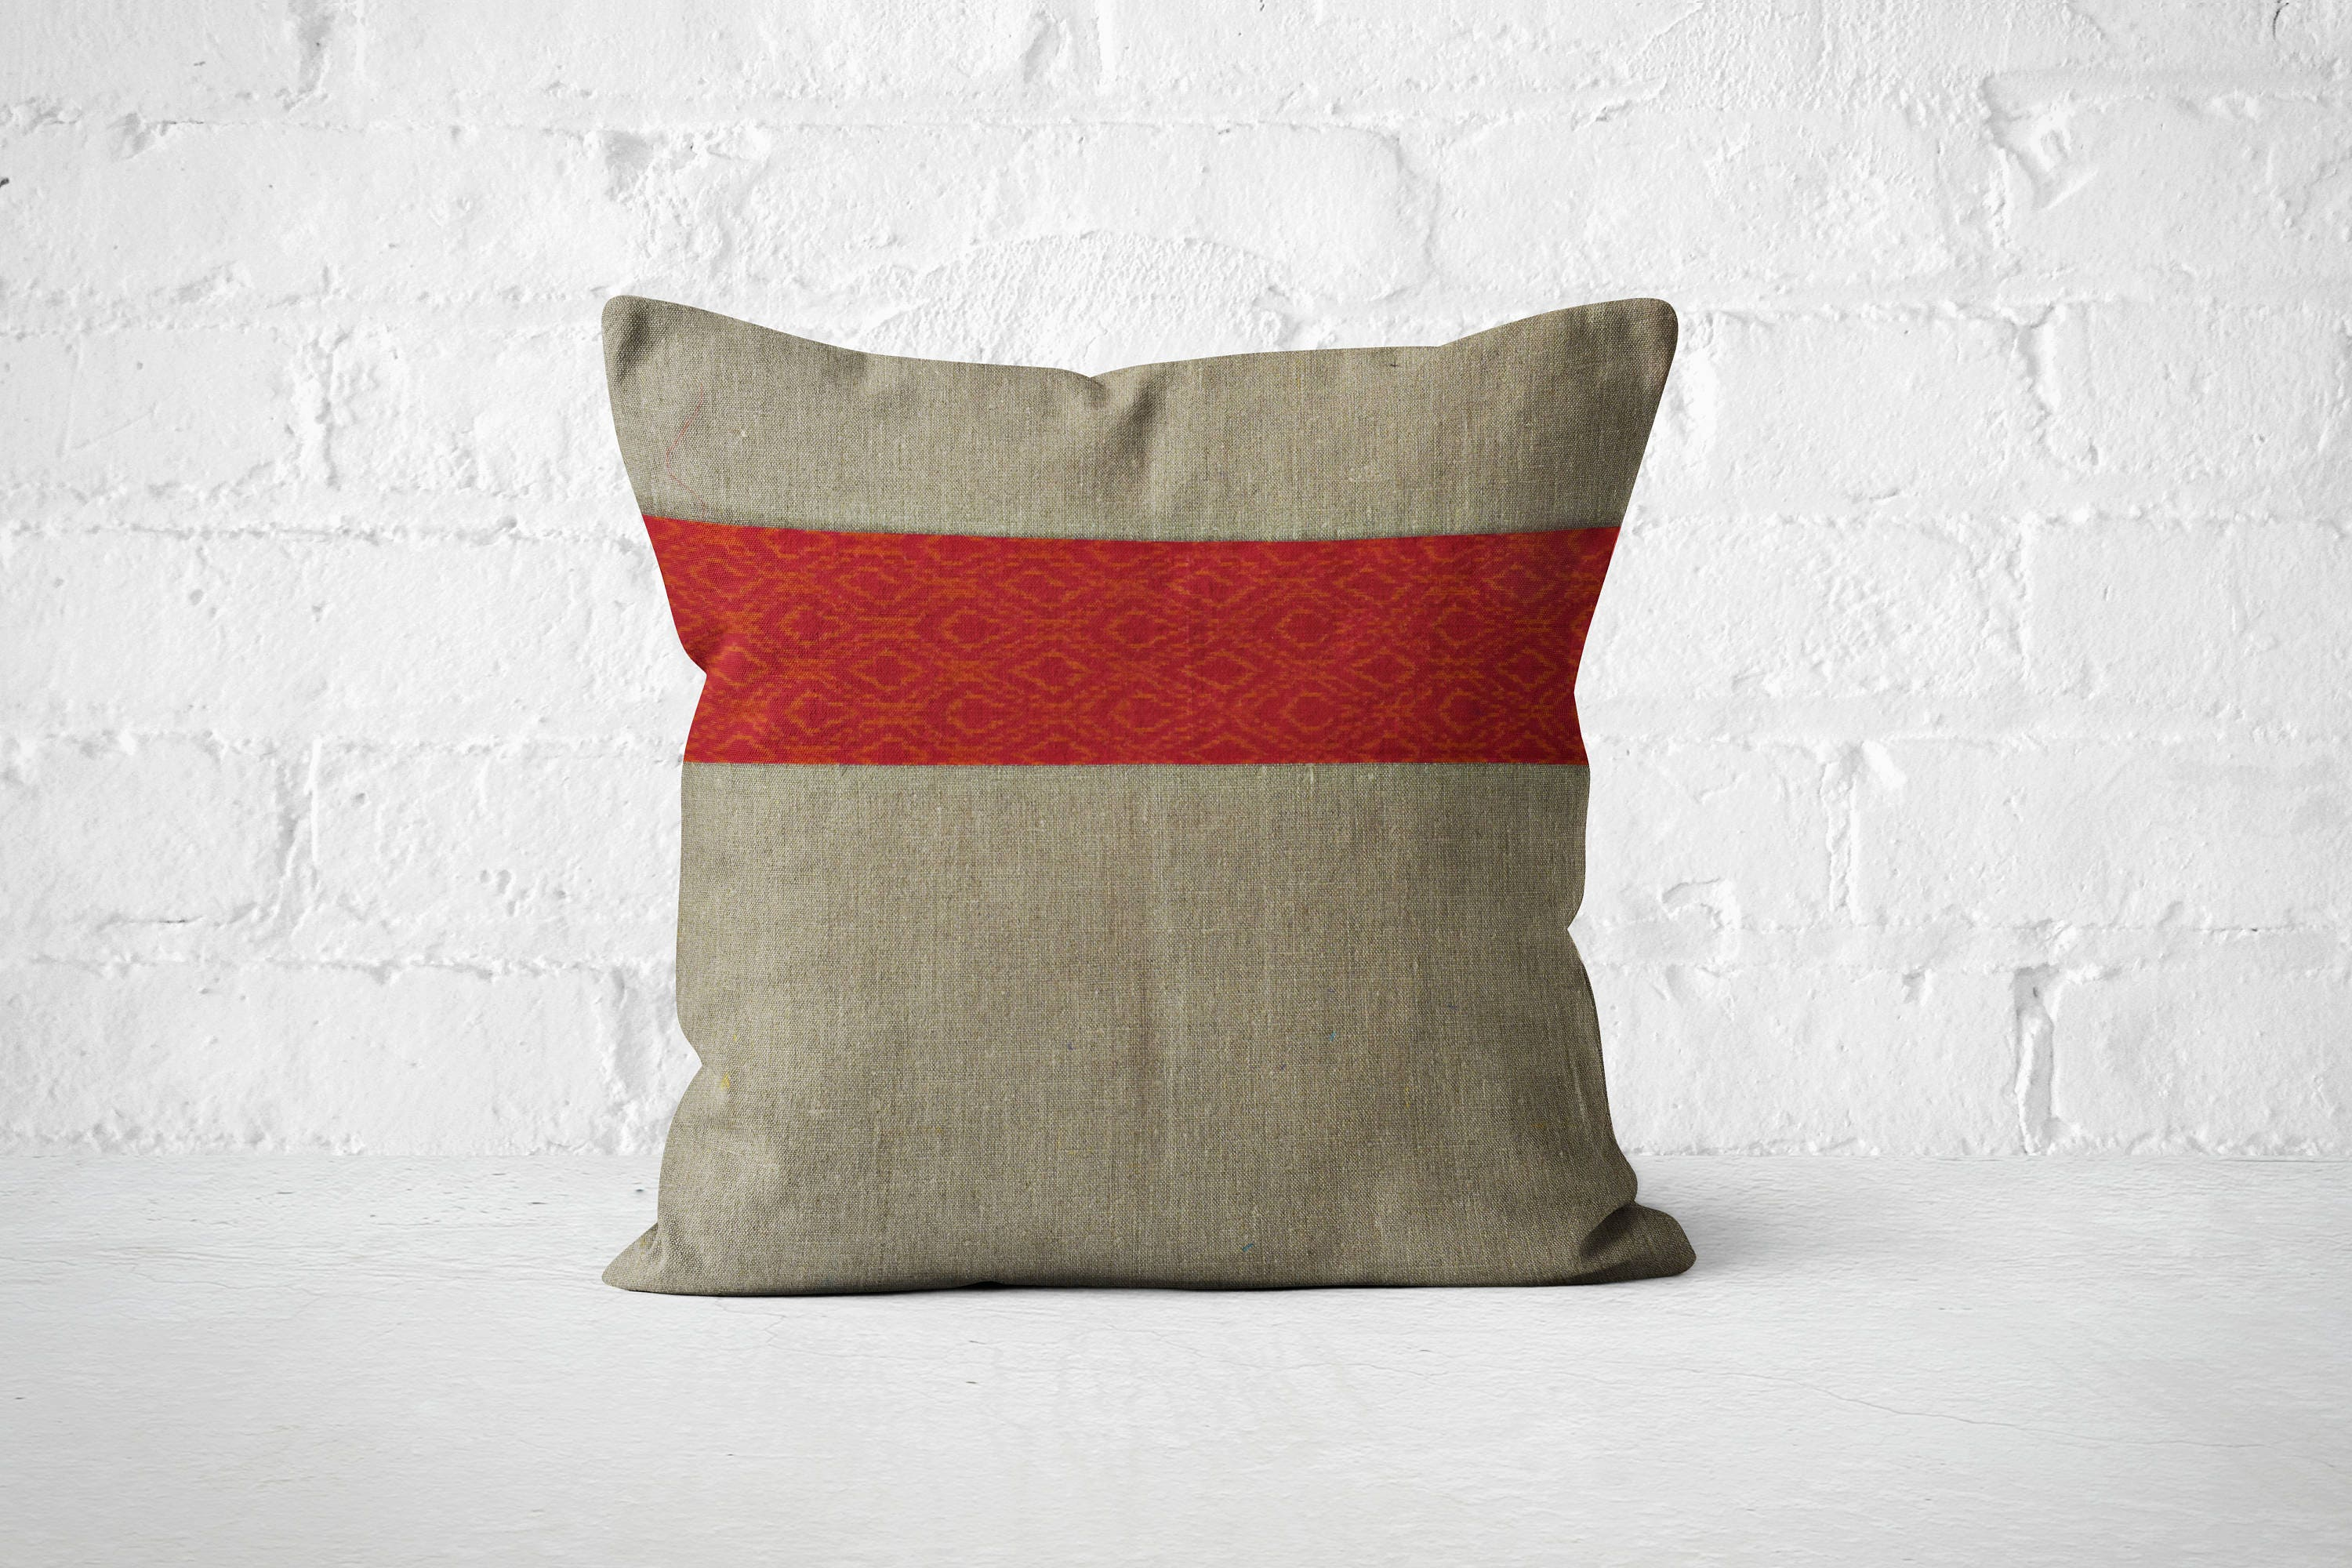 Linen Pillow Boho living room Hand woven accent pillow Unique cushion Trendy Pillow for couch  Bohemian room dcor Boho bedroom dcor